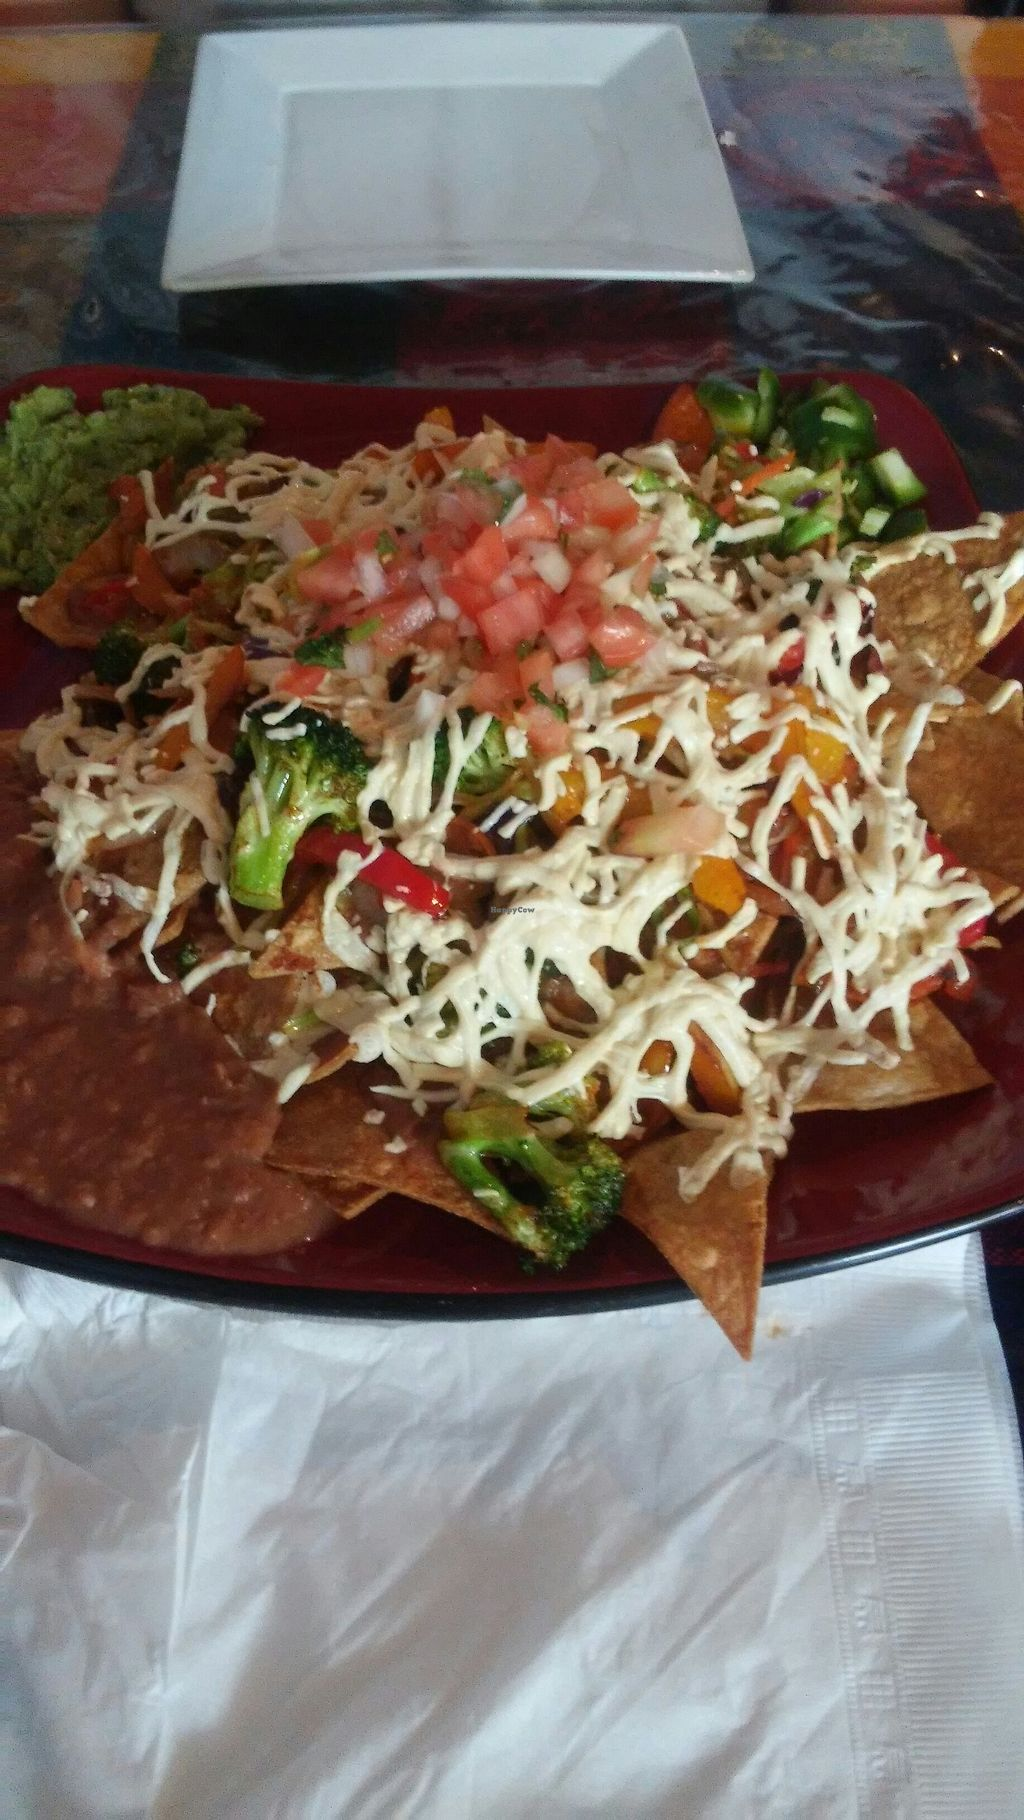 "Photo of Cantina Vallarta  by <a href=""/members/profile/Totallynotvegan"">Totallynotvegan</a> <br/>Nachos!! <br/> July 27, 2017  - <a href='/contact/abuse/image/71925/285608'>Report</a>"